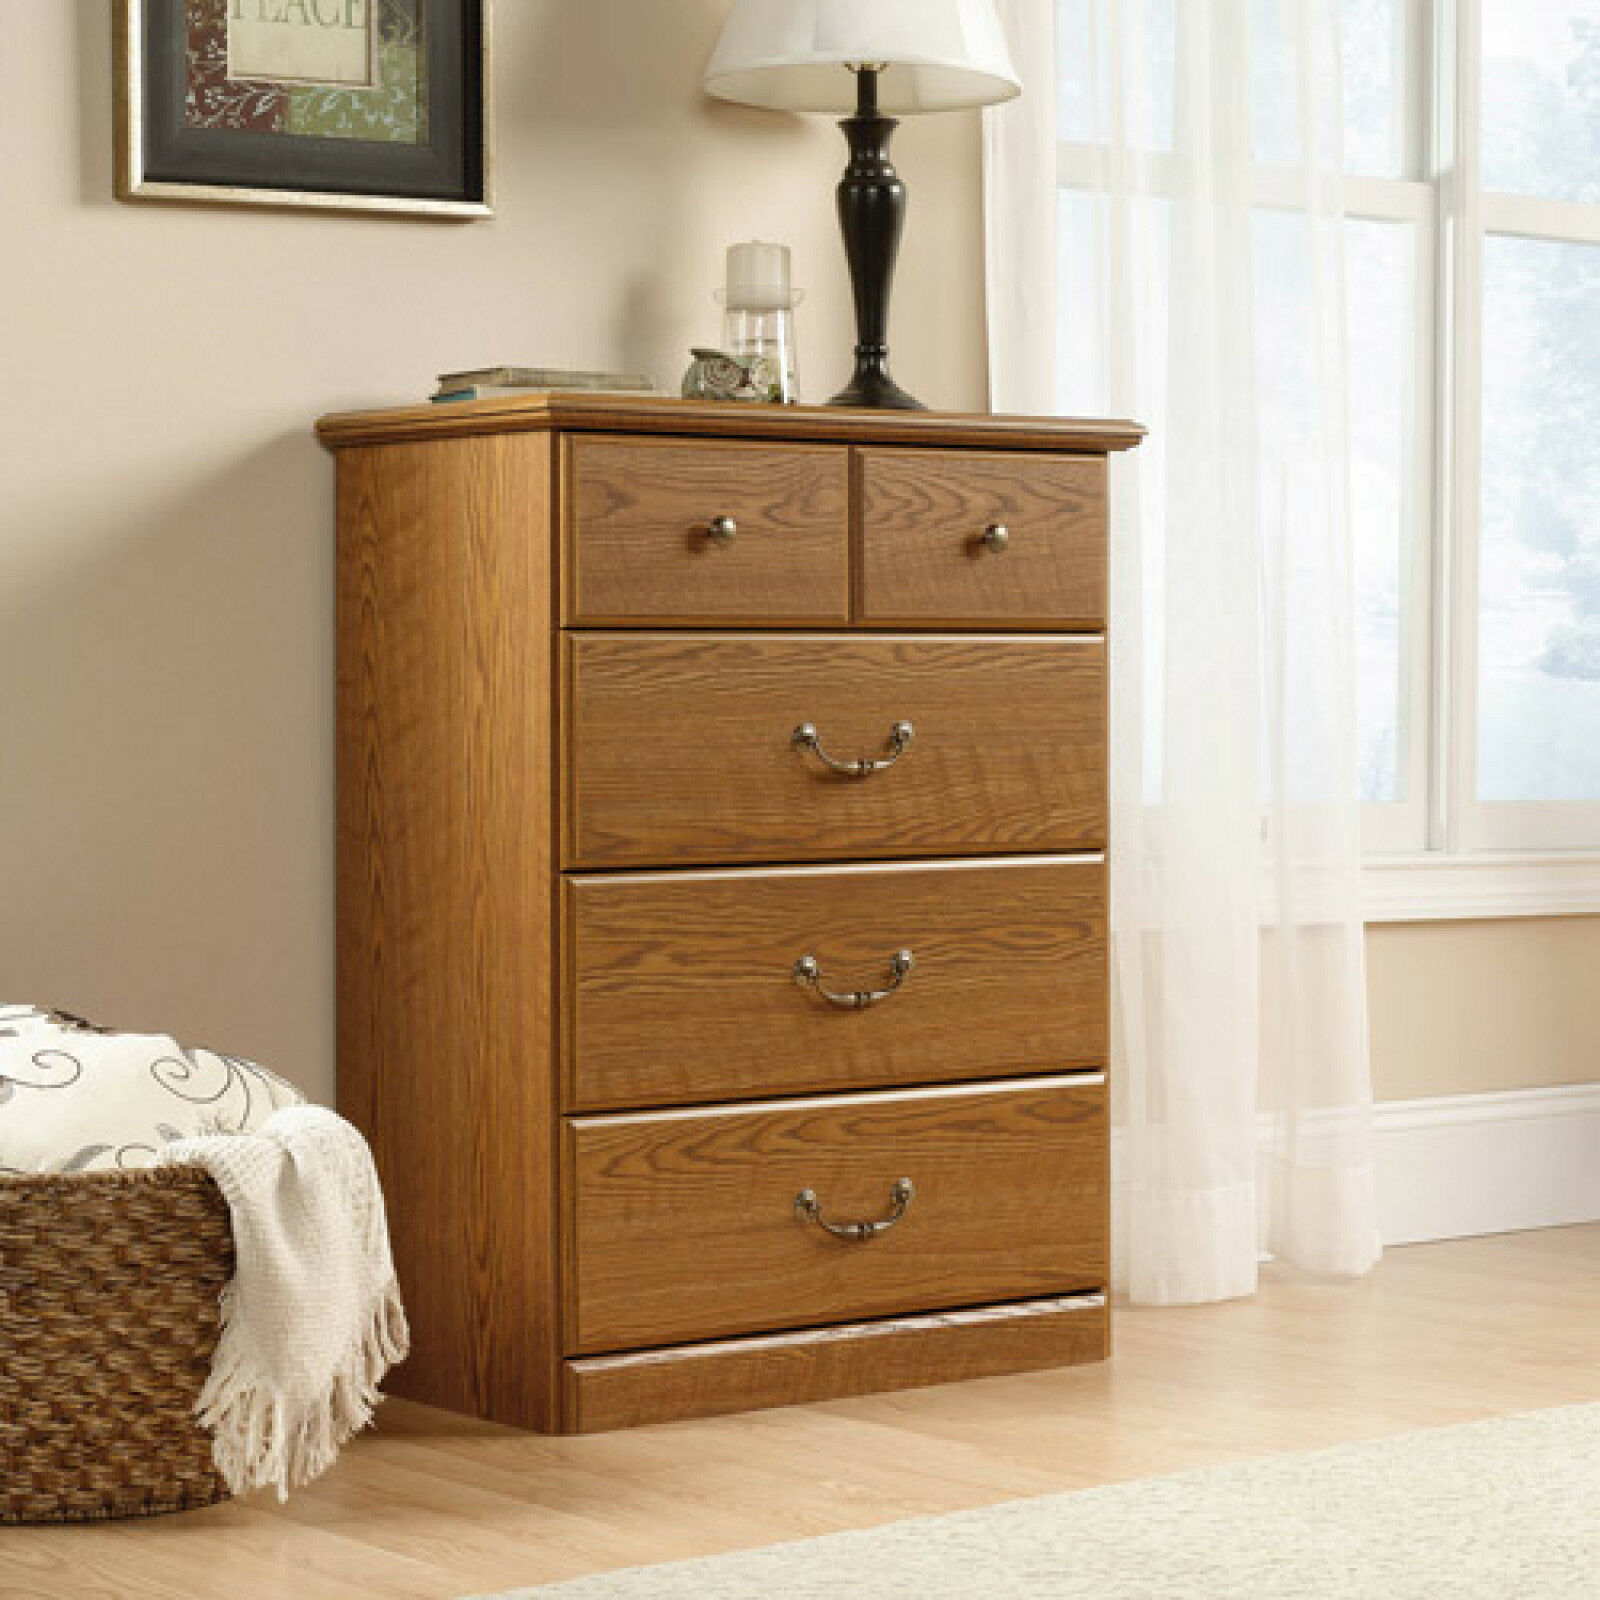 Details About 4 Drawer Dresser Chest W Decorative Handle Bedroom Furniture Tv Stand Wood